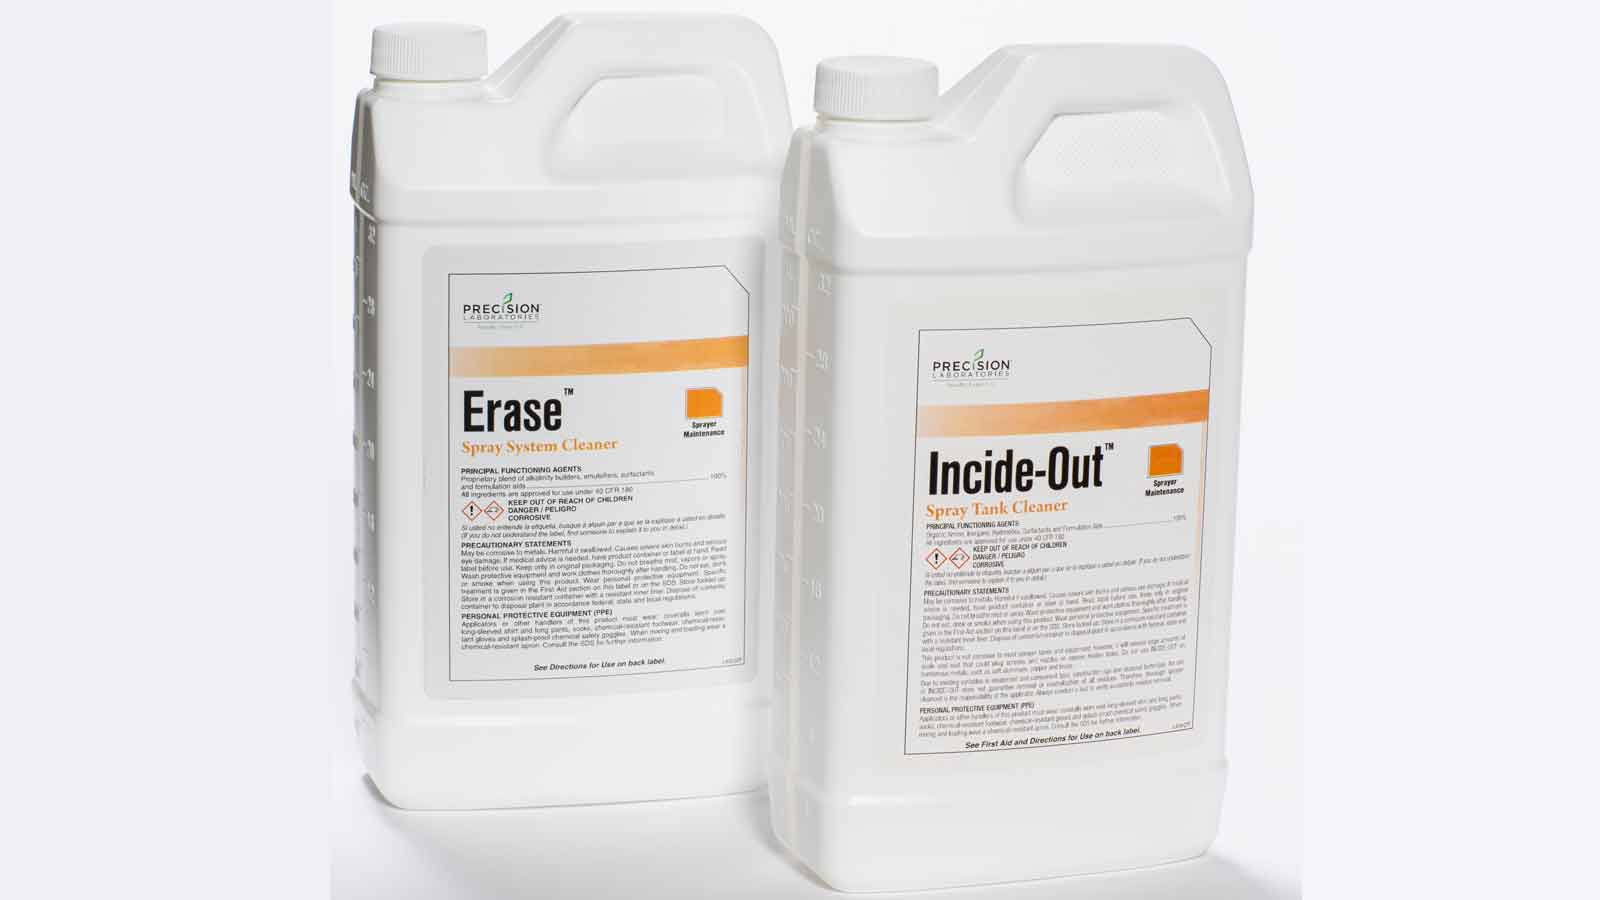 Studio shot of Erase and Incide-Out chemicals